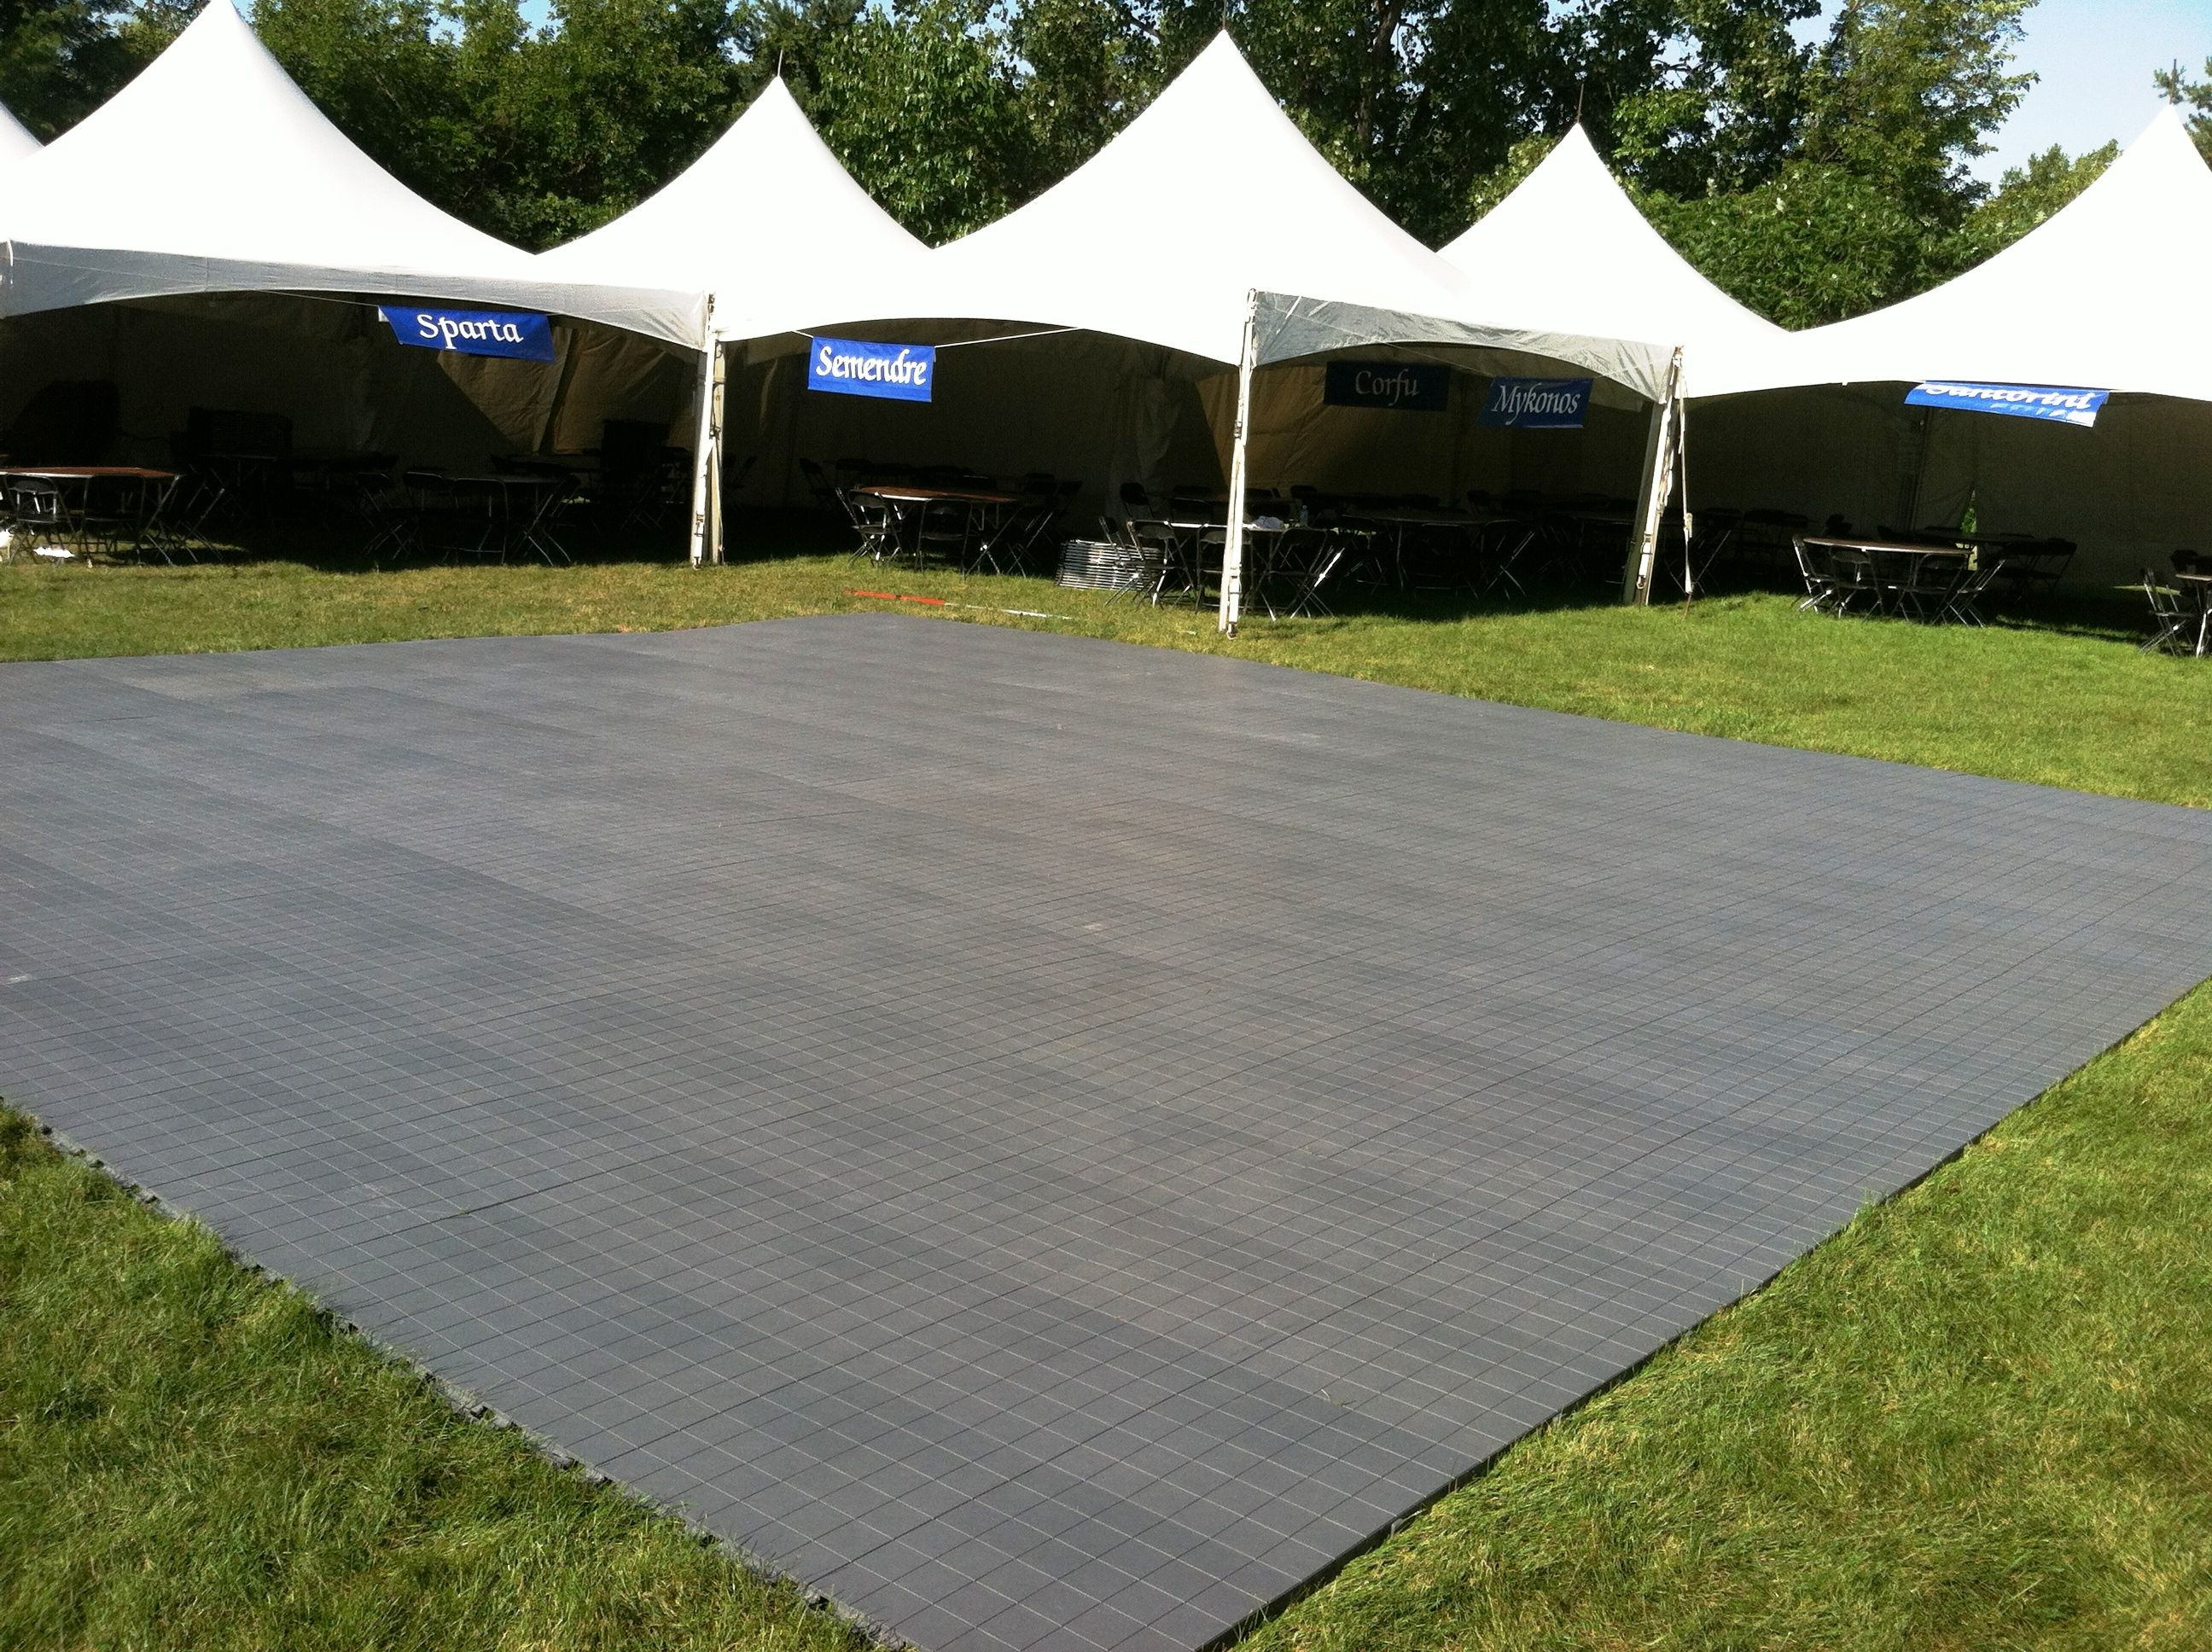 A festival with 12 festival frame tents and event flooring for the dance floor. 844 & A festival with 12 festival frame tents and event flooring for the ...